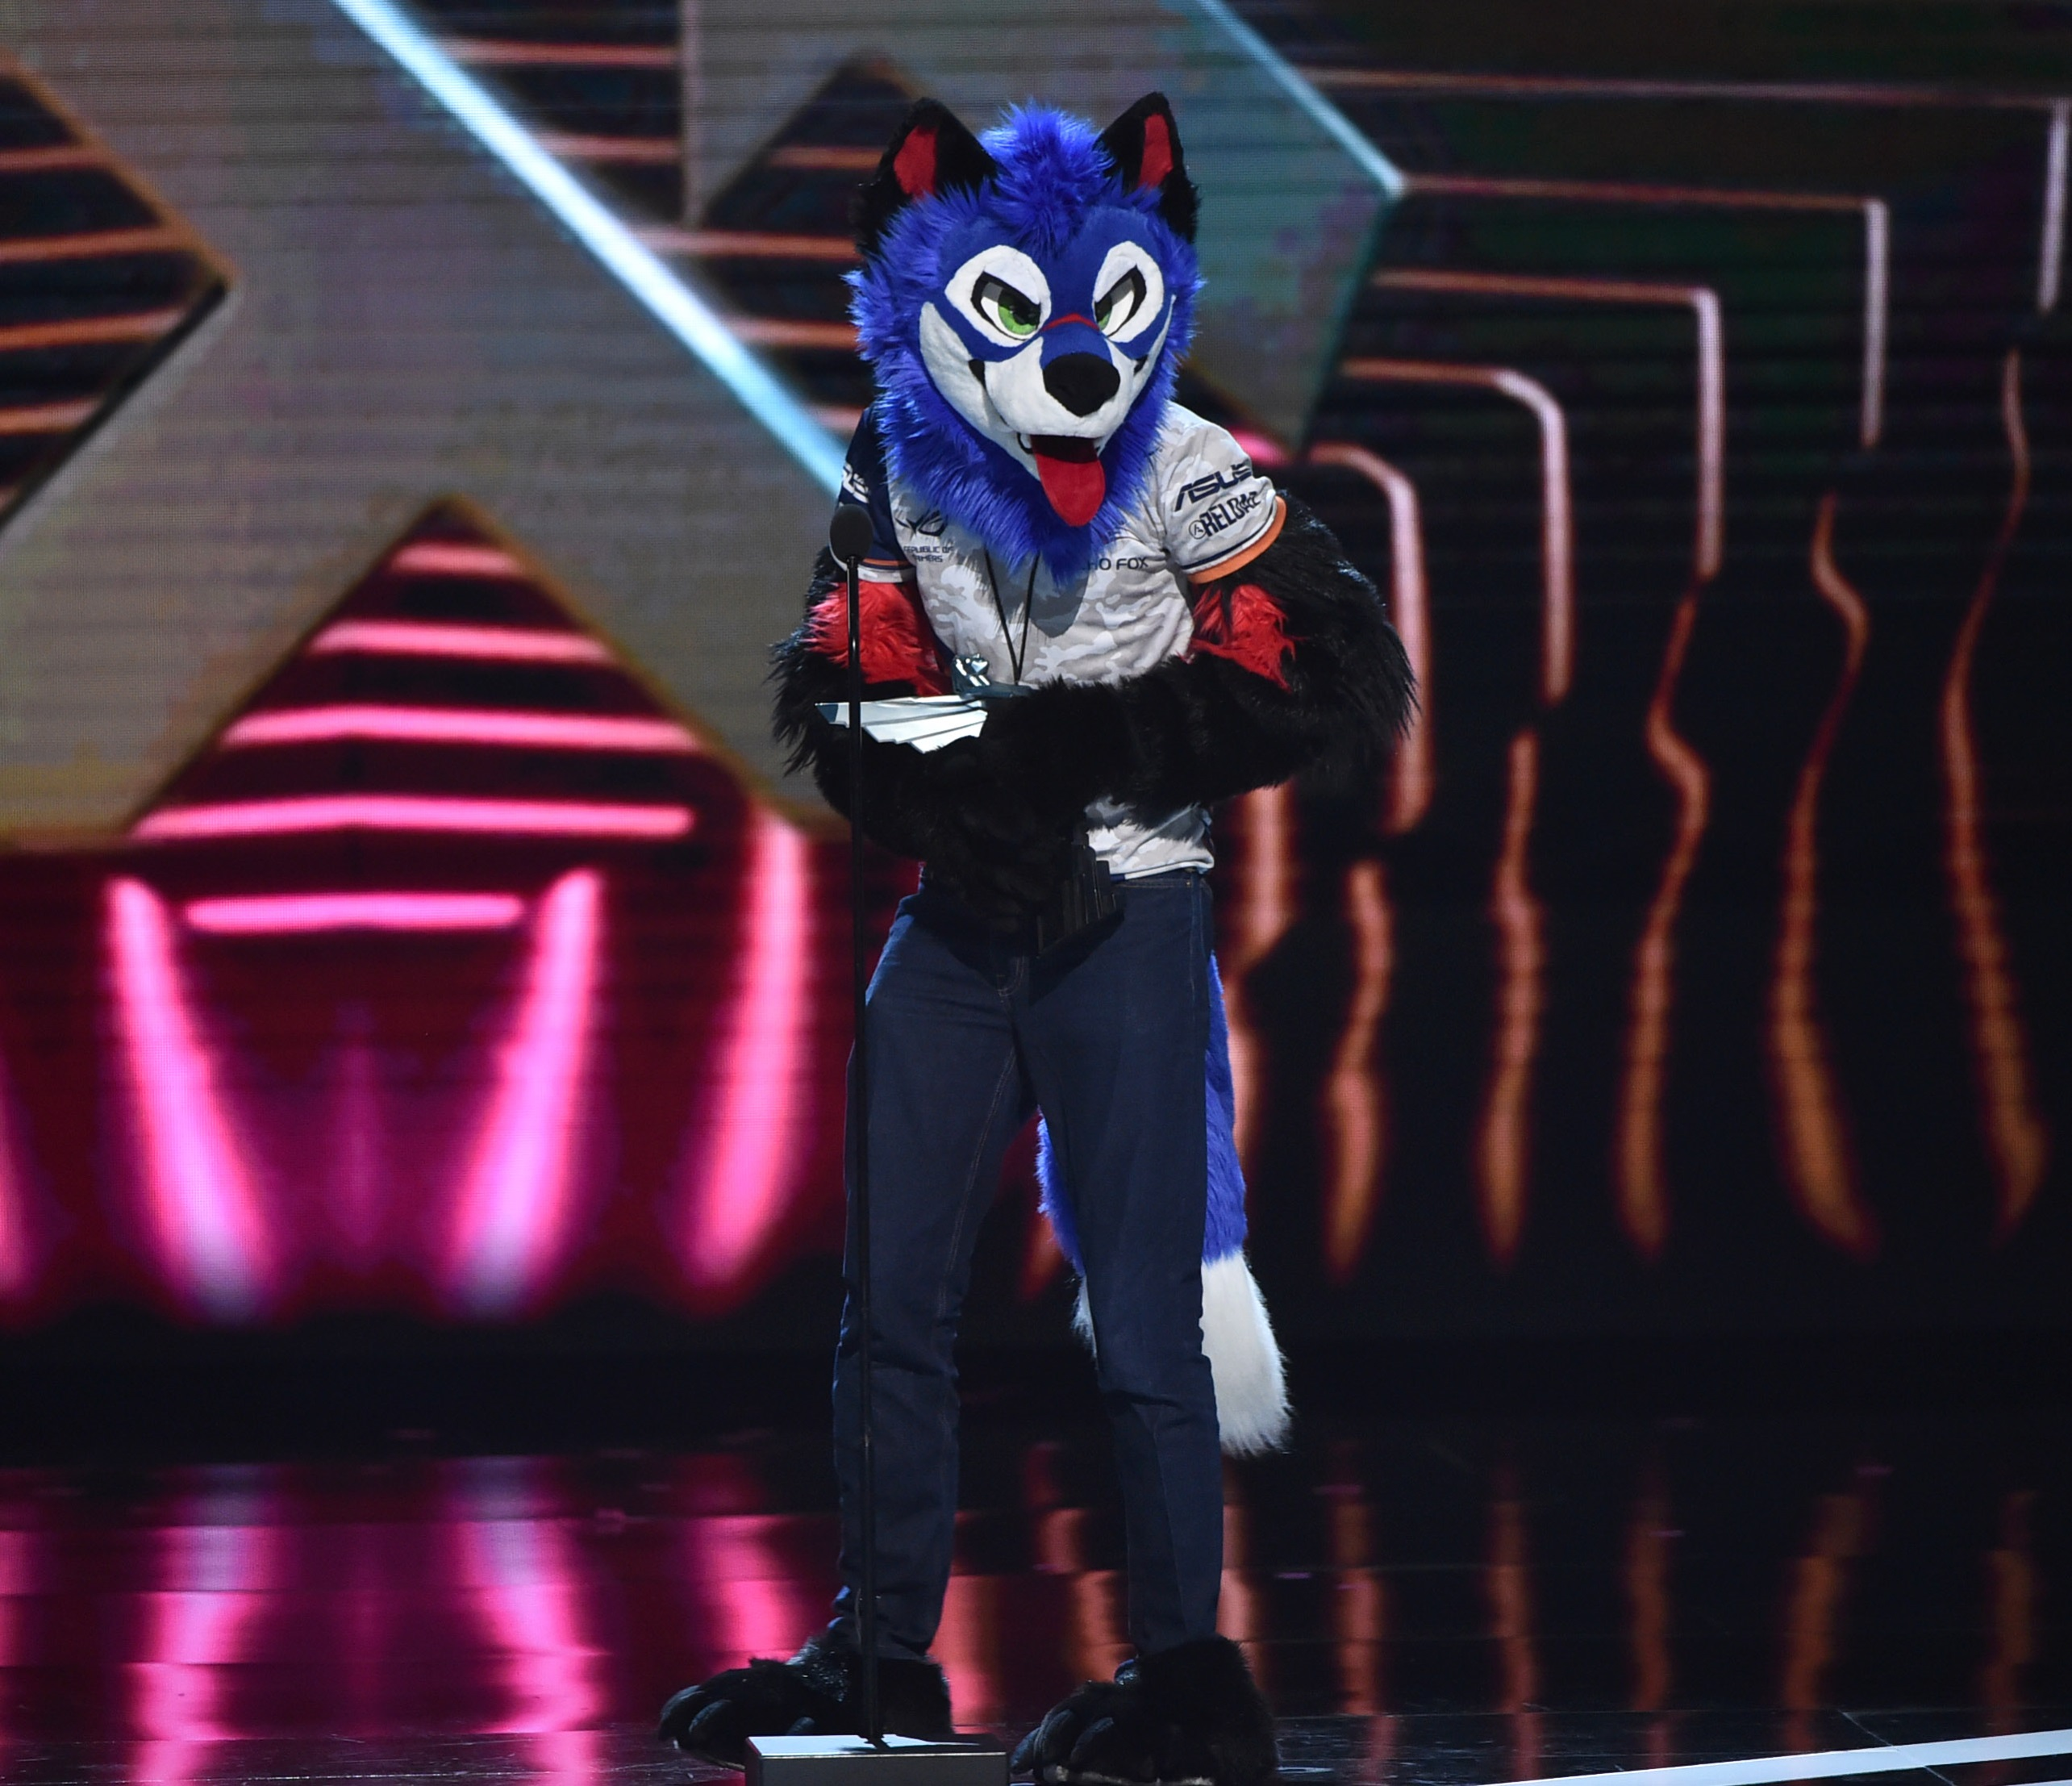 SonicFox attends The 2018 Game Awards at Microsoft Theater on December 06, 2018 in Los Angeles, California